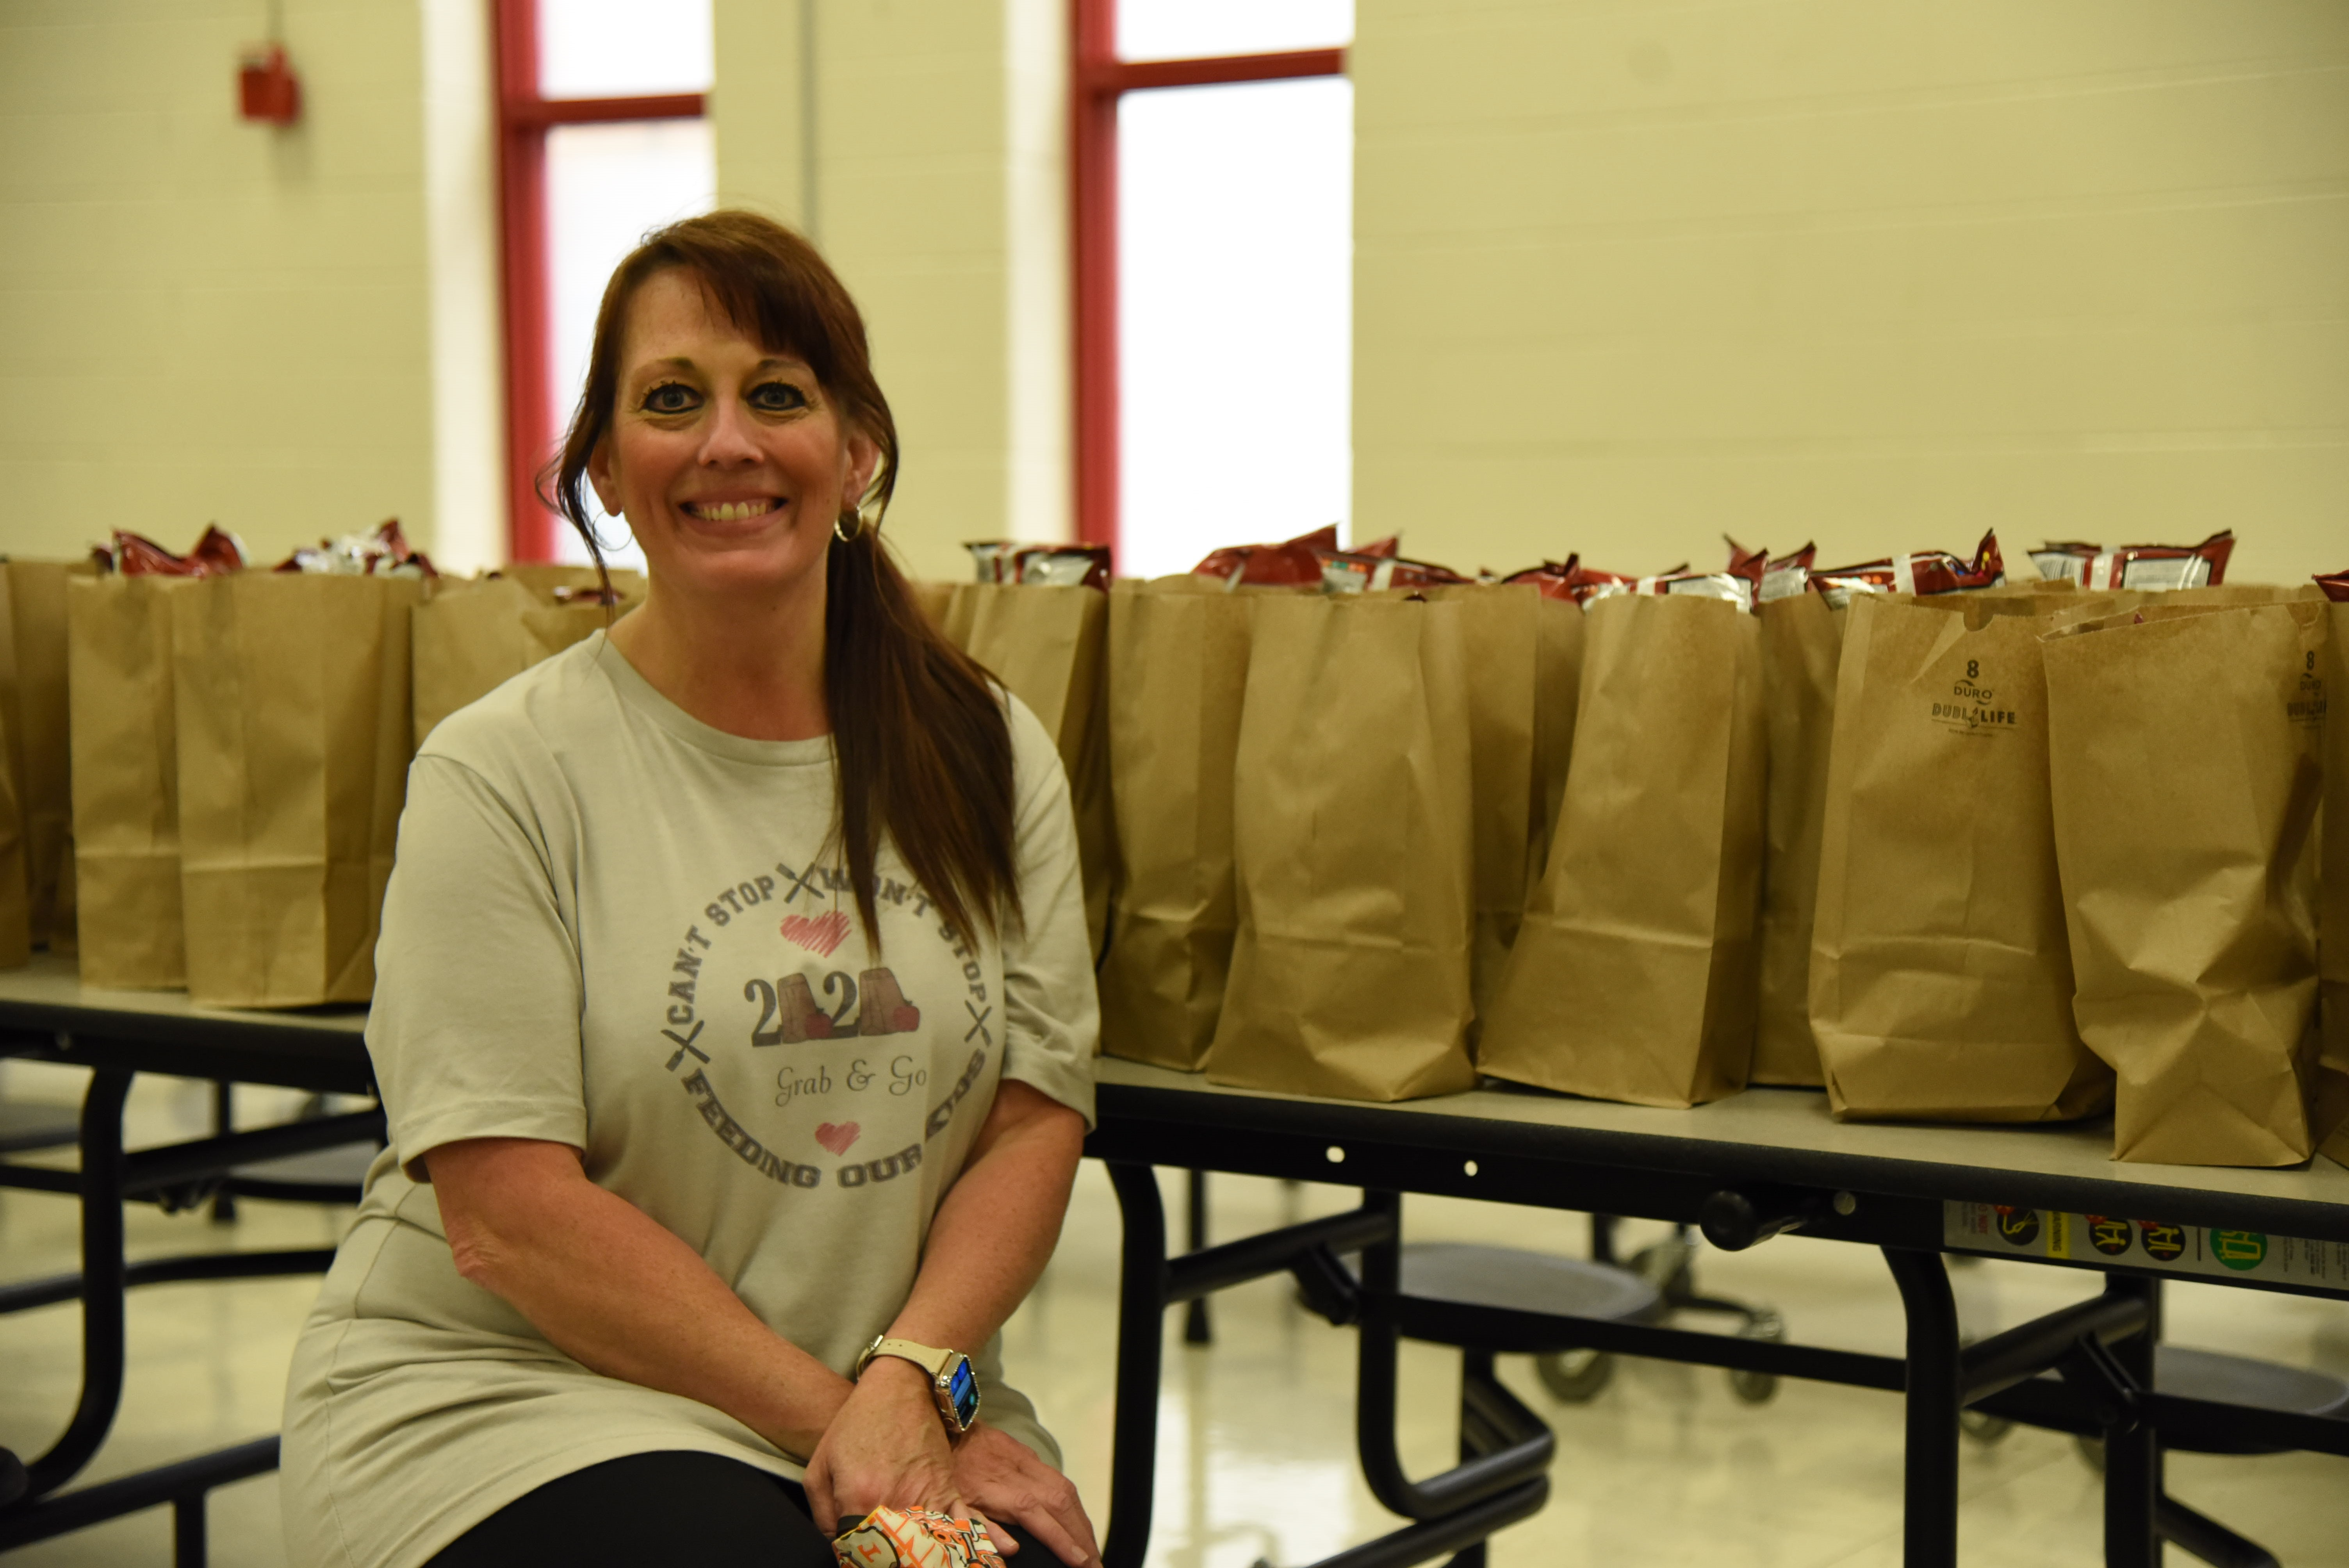 Tami Benziger is coordinating meal distribution at Halls High School during the extended closure. When school is in session, Benziger is the cafeteria manager at Gibbs Middle School.